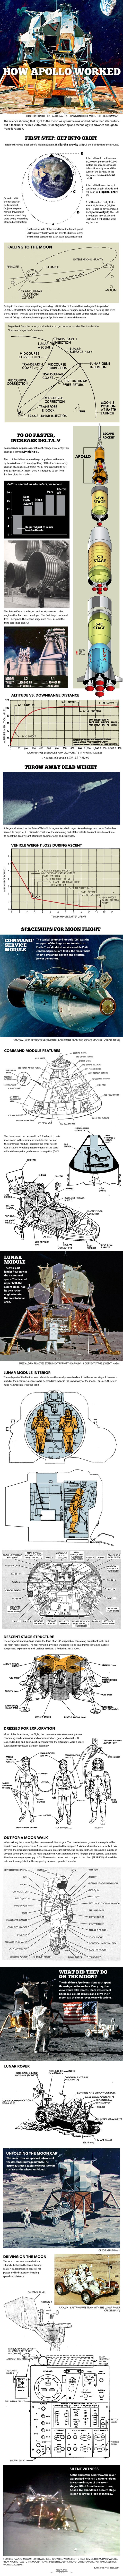 Diagrams and NASA artwork show how Apollo astronauts flew to the moon#trip to #moon